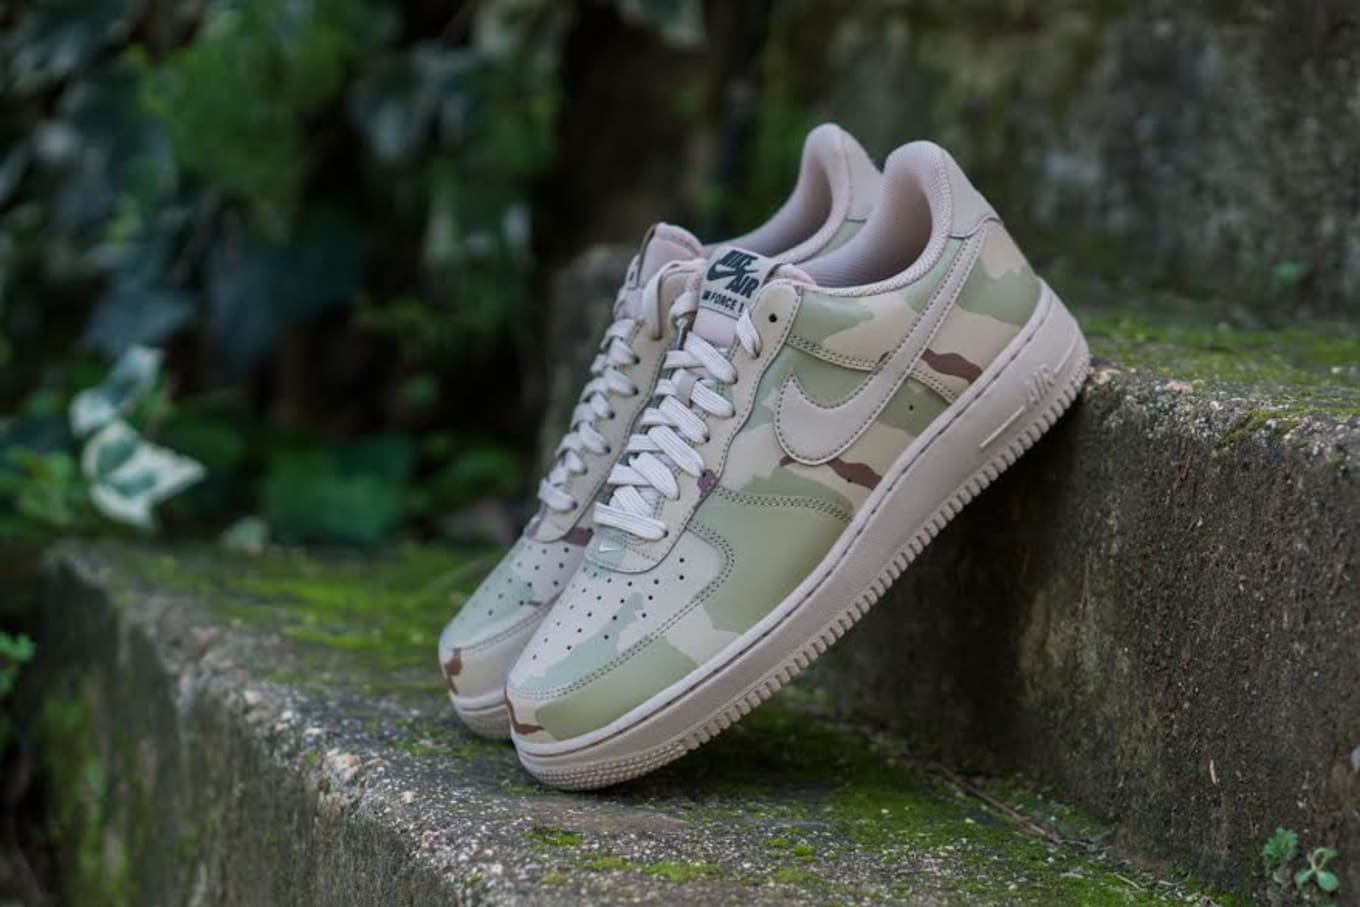 748d0ce21637d Reflective Camouflage Covers the Nike Air Force 1 Low. New release hitting  stores now.